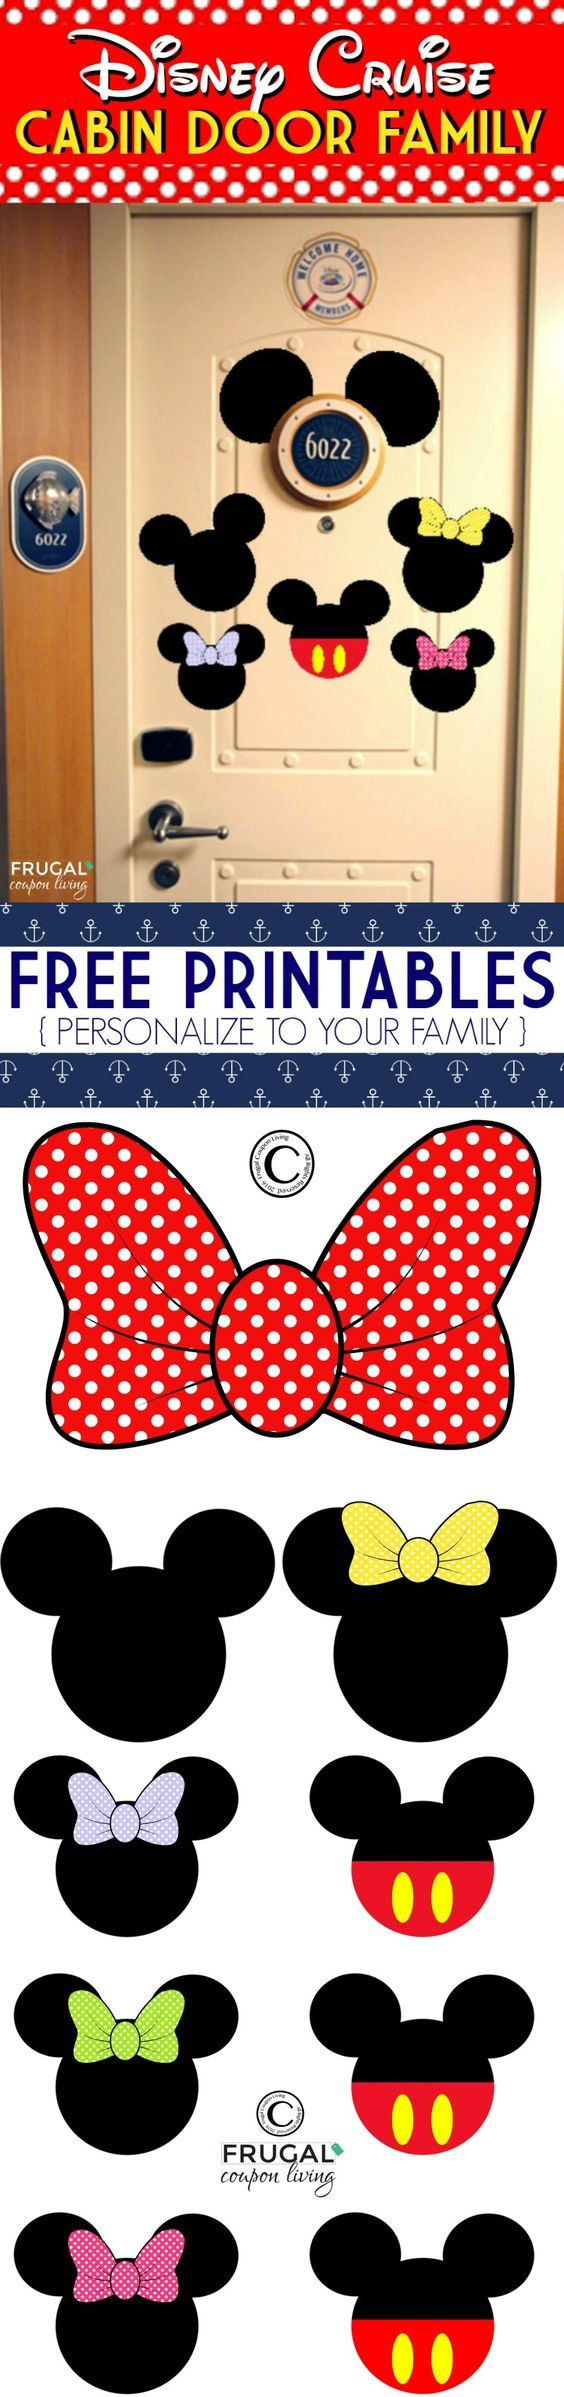 It was so fun seeing the Disney Tradition of everyone's door decorated on our Disney Cruise, that is why I had to create these  FREE Disney Cruise Door Printables - Personalize to your family, print now from Frugal Coupon Living.